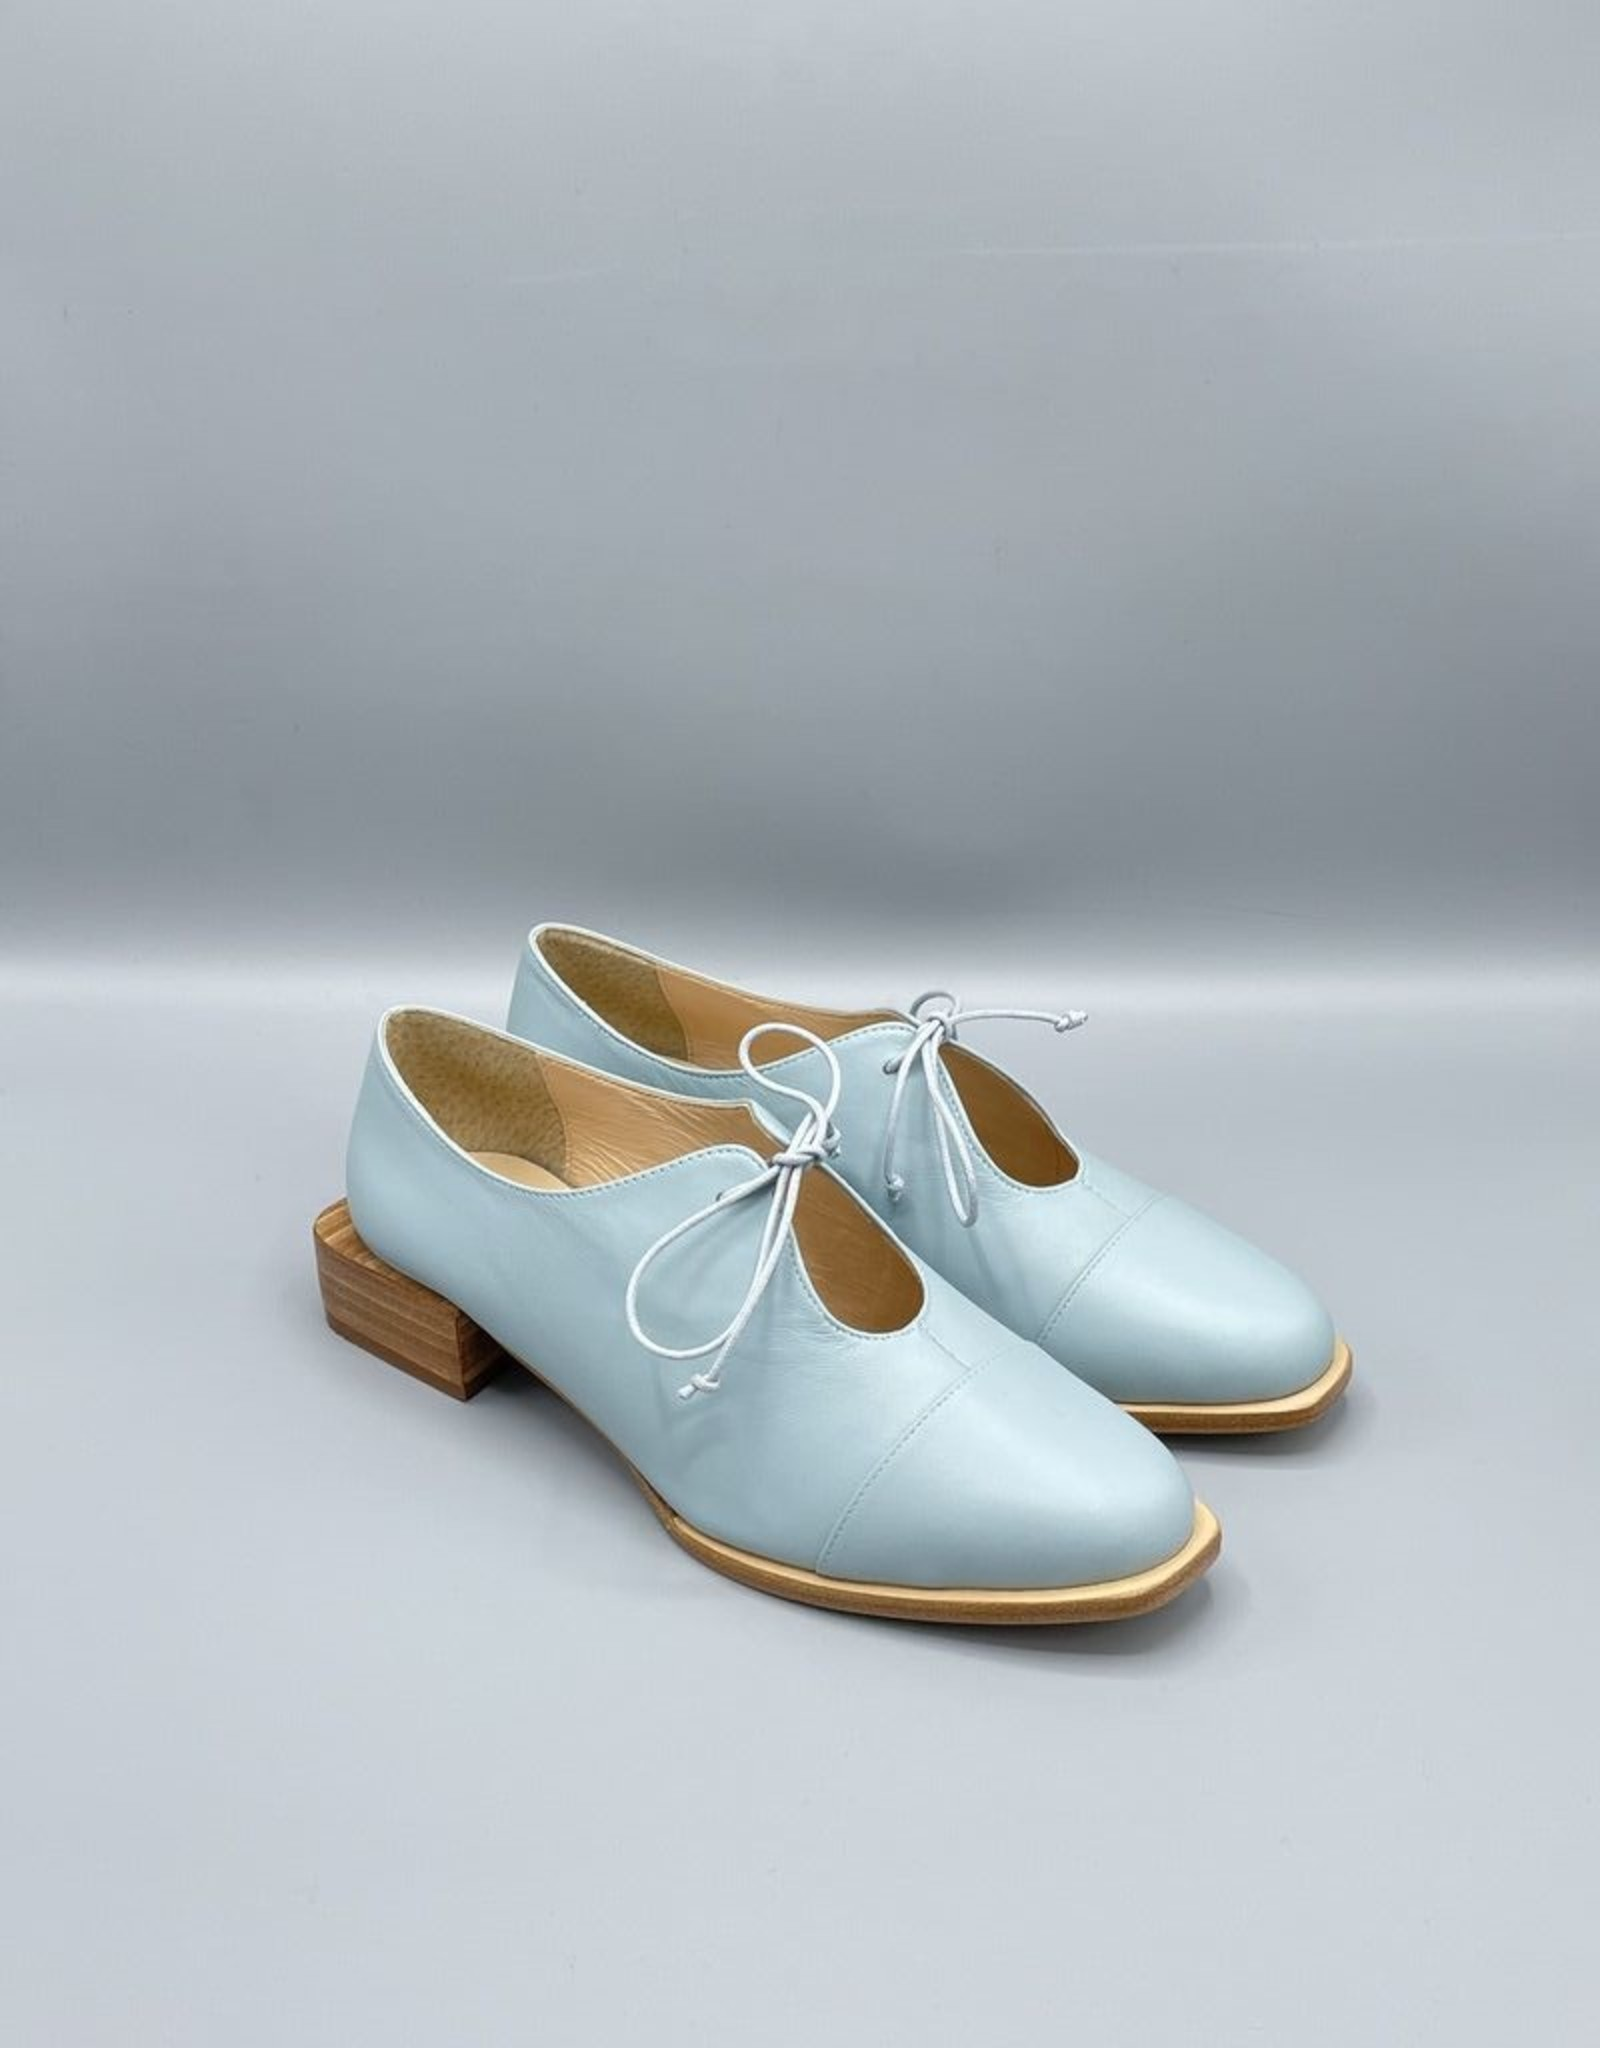 Lorraci Rounded Square Toe Tie Flat